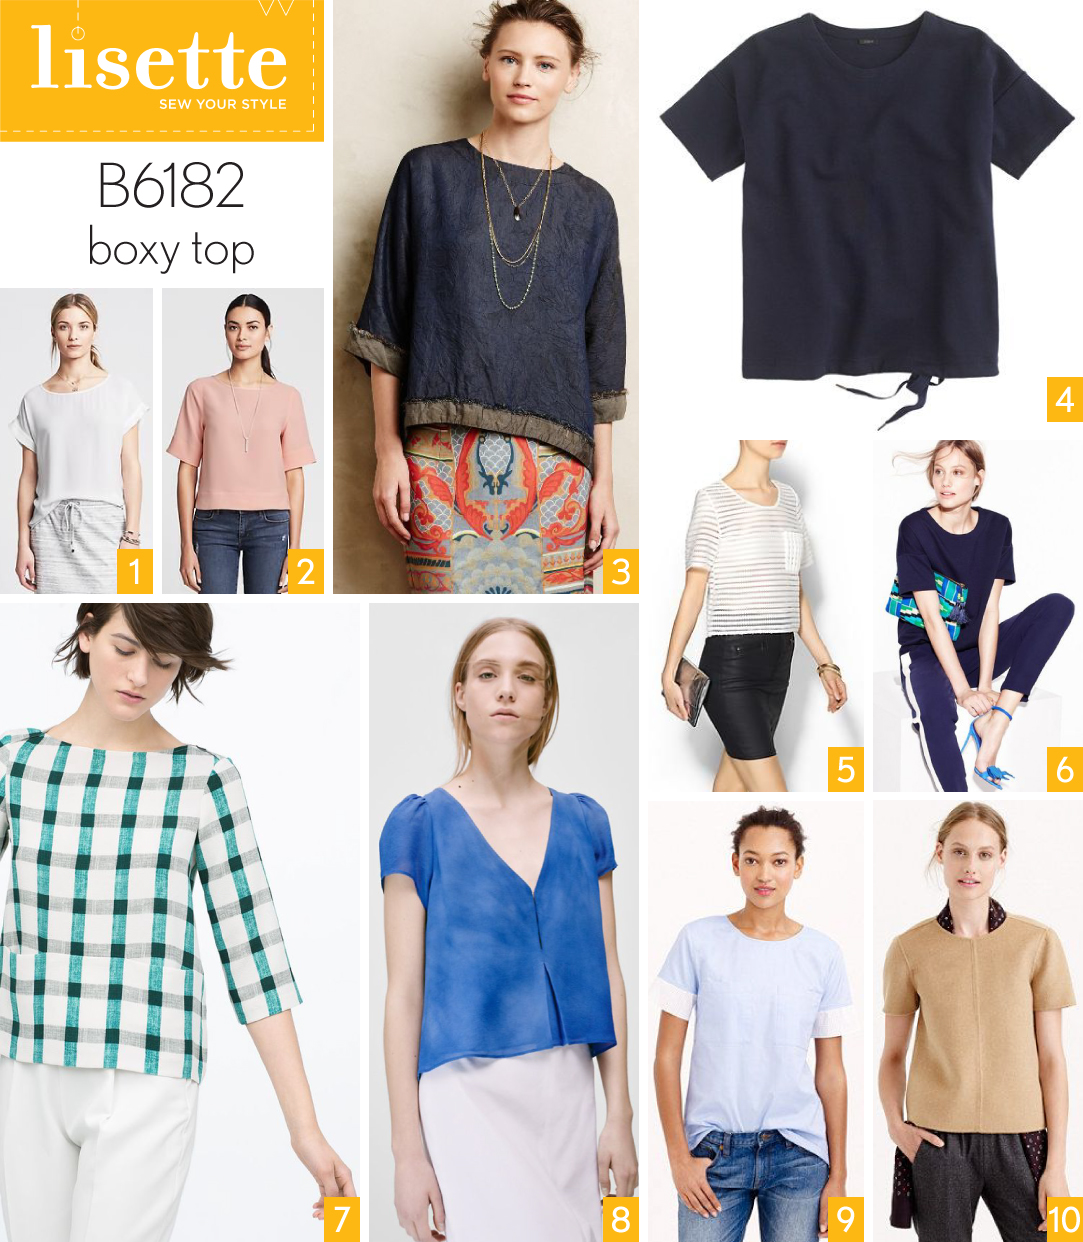 Style and fabric inspiration lisette b6182 boxy top blog b6182 1 jeuxipadfo Image collections